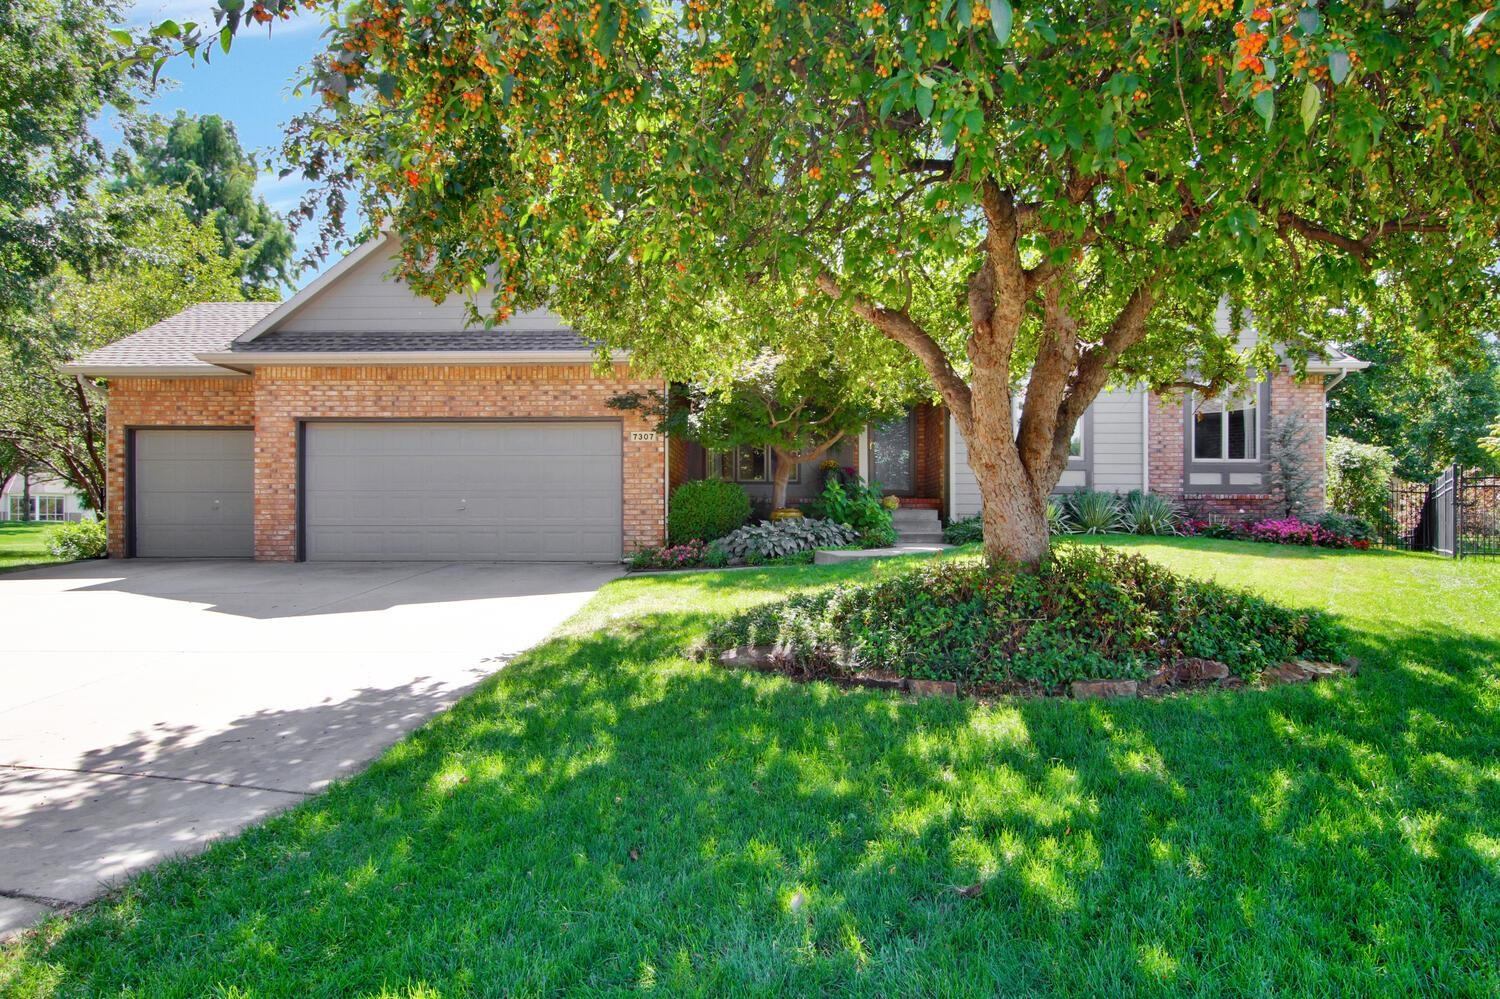 THIS ROBL RANCH HOME IS LOCATED ON #15 FAIRWAY OF REFLECTION RIDGE GOLF COURSE & A CUL-DE-SAC LOT.